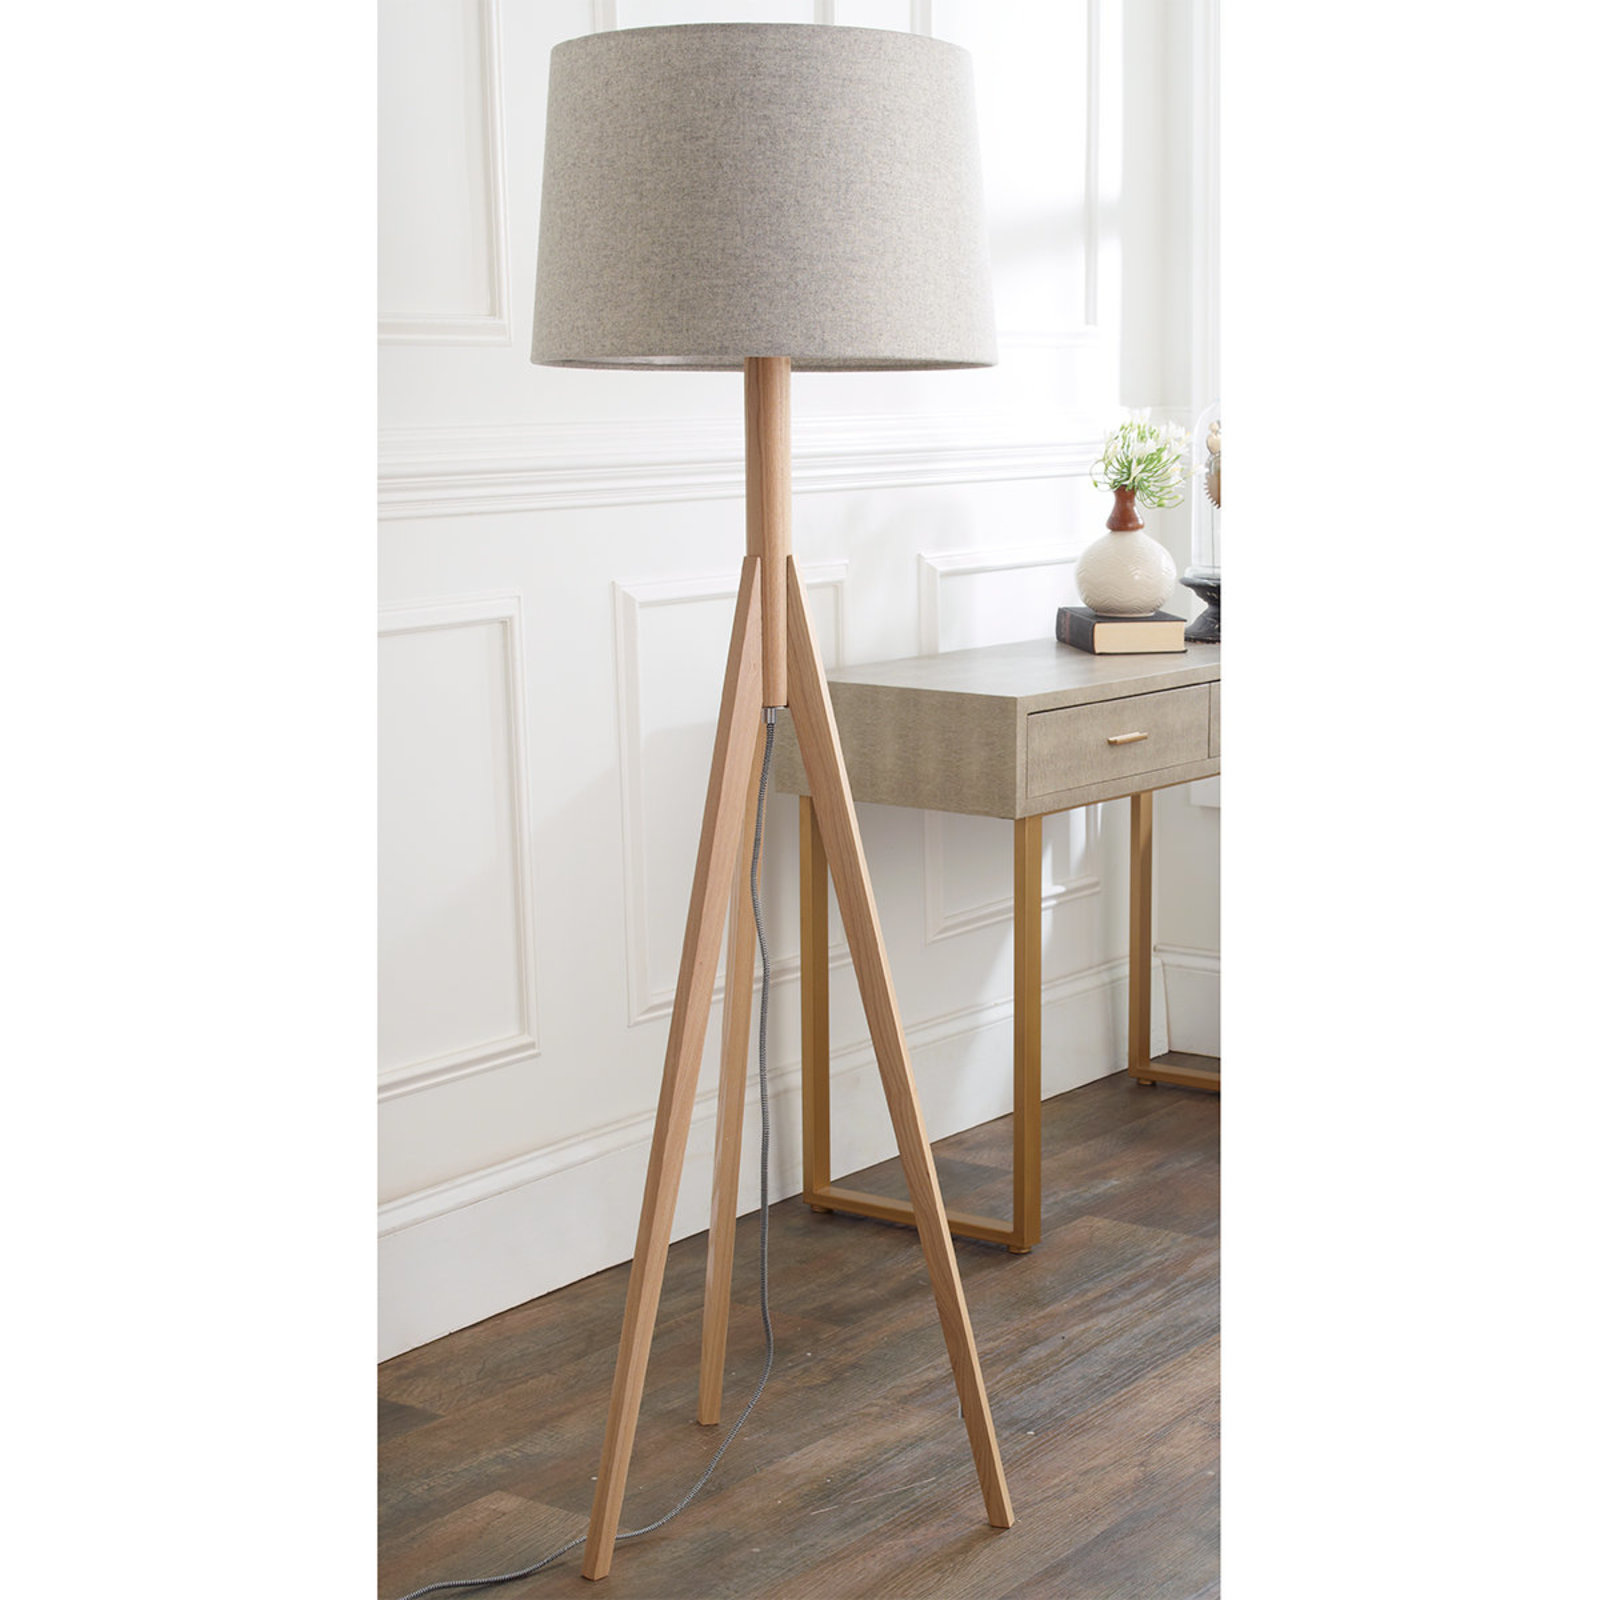 floor lamps modern contemporary designs shades light mini tripod lamp frosted glass cylinder accent table grey patterned armchair rechargeable battery powered height console